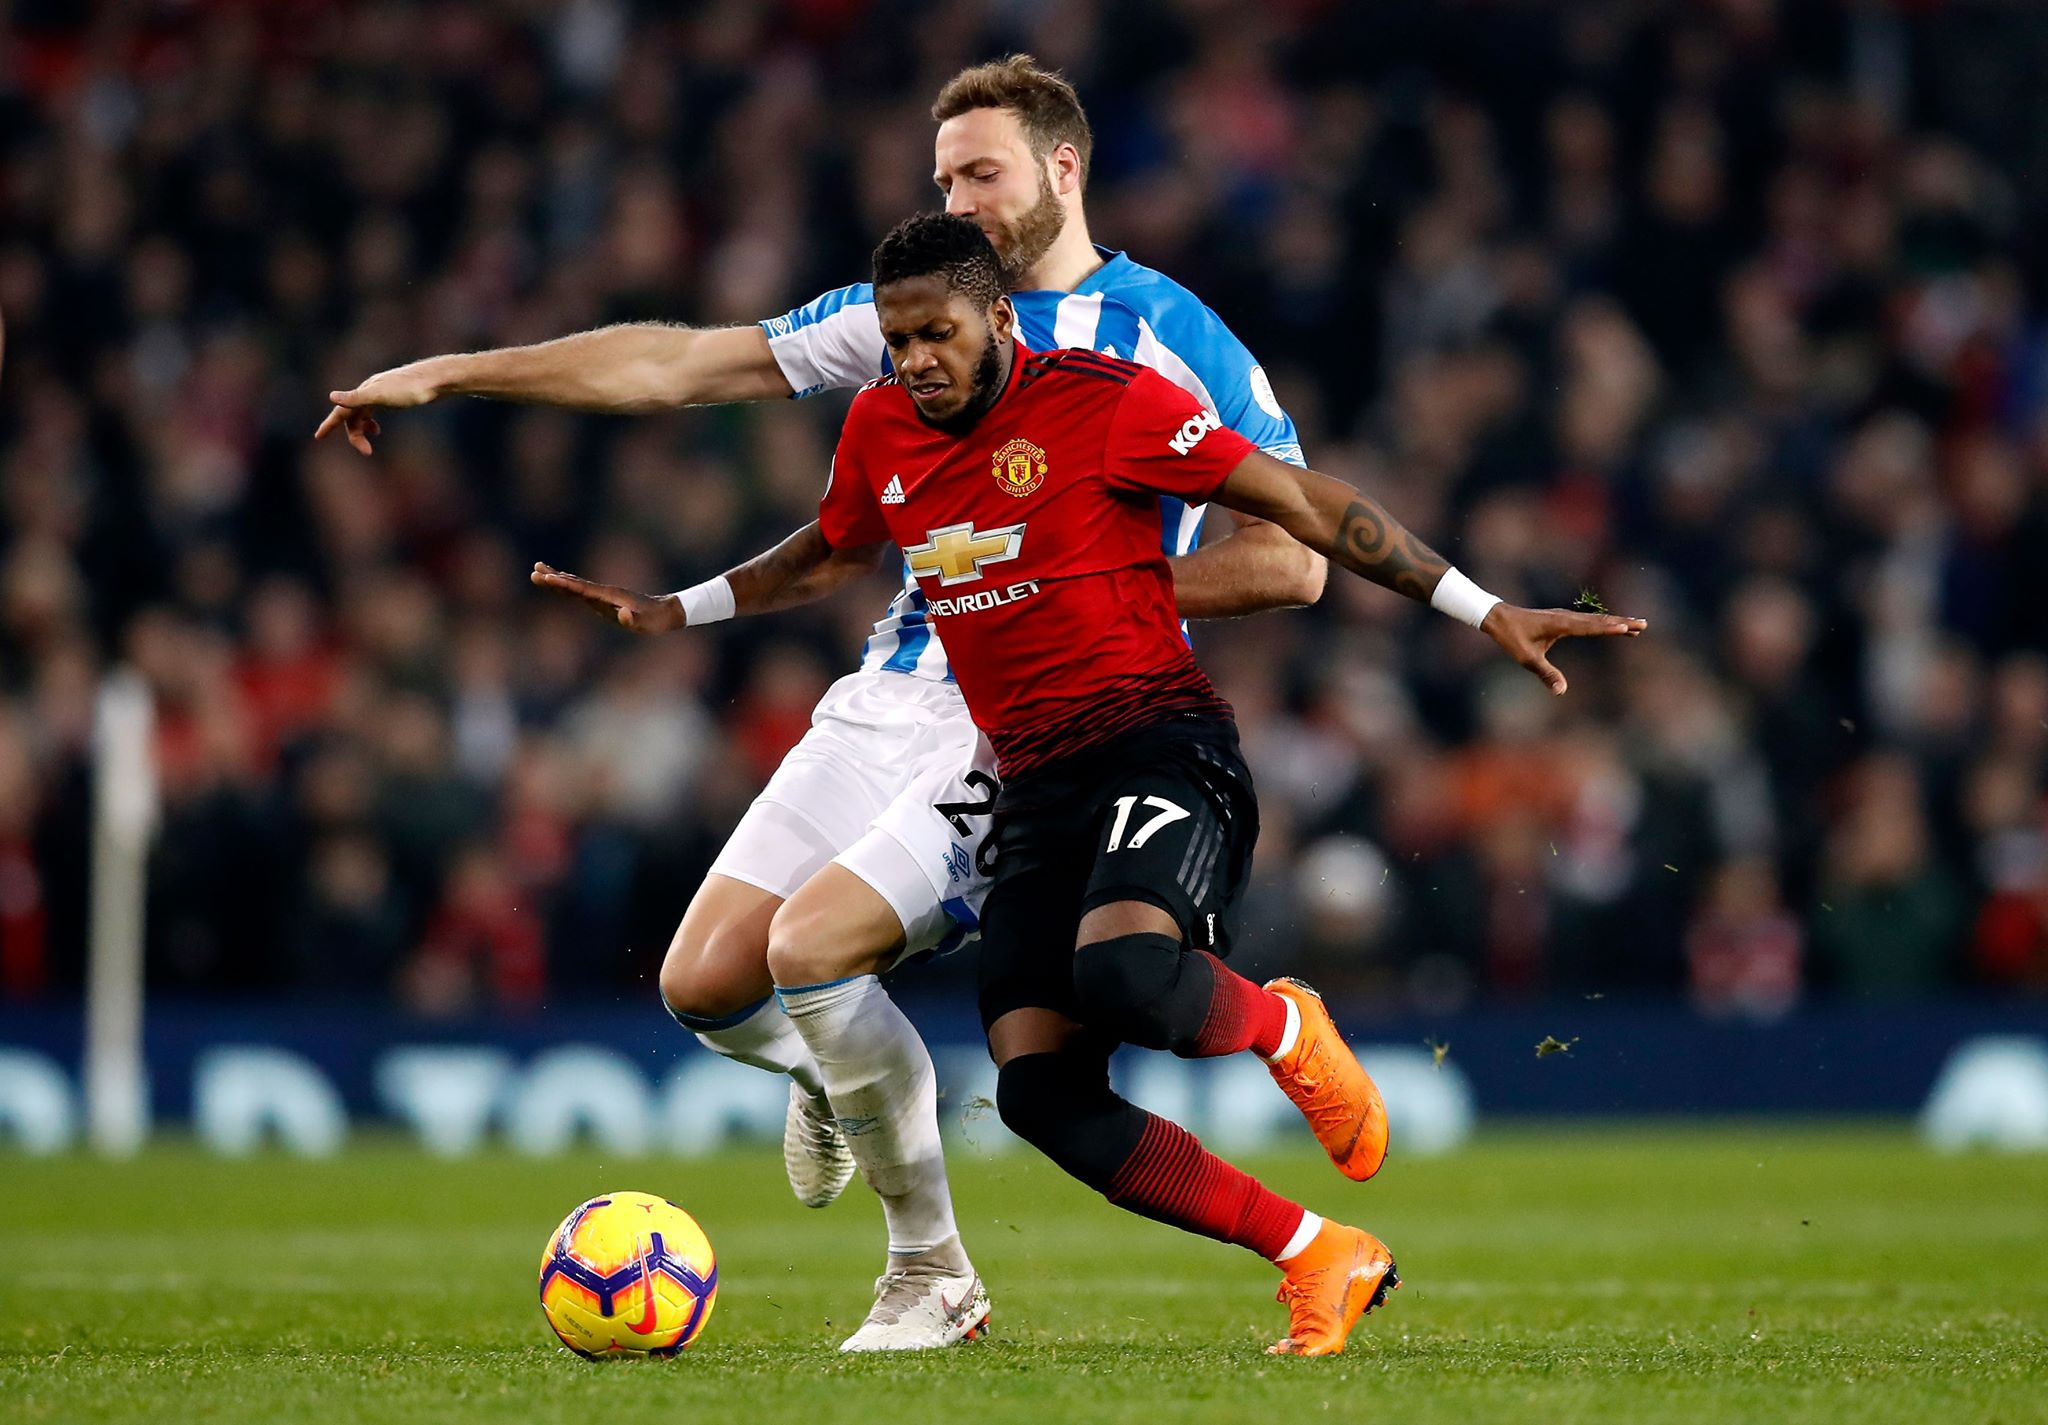 Paul Merson reveals his prediction for Fulham v Man United